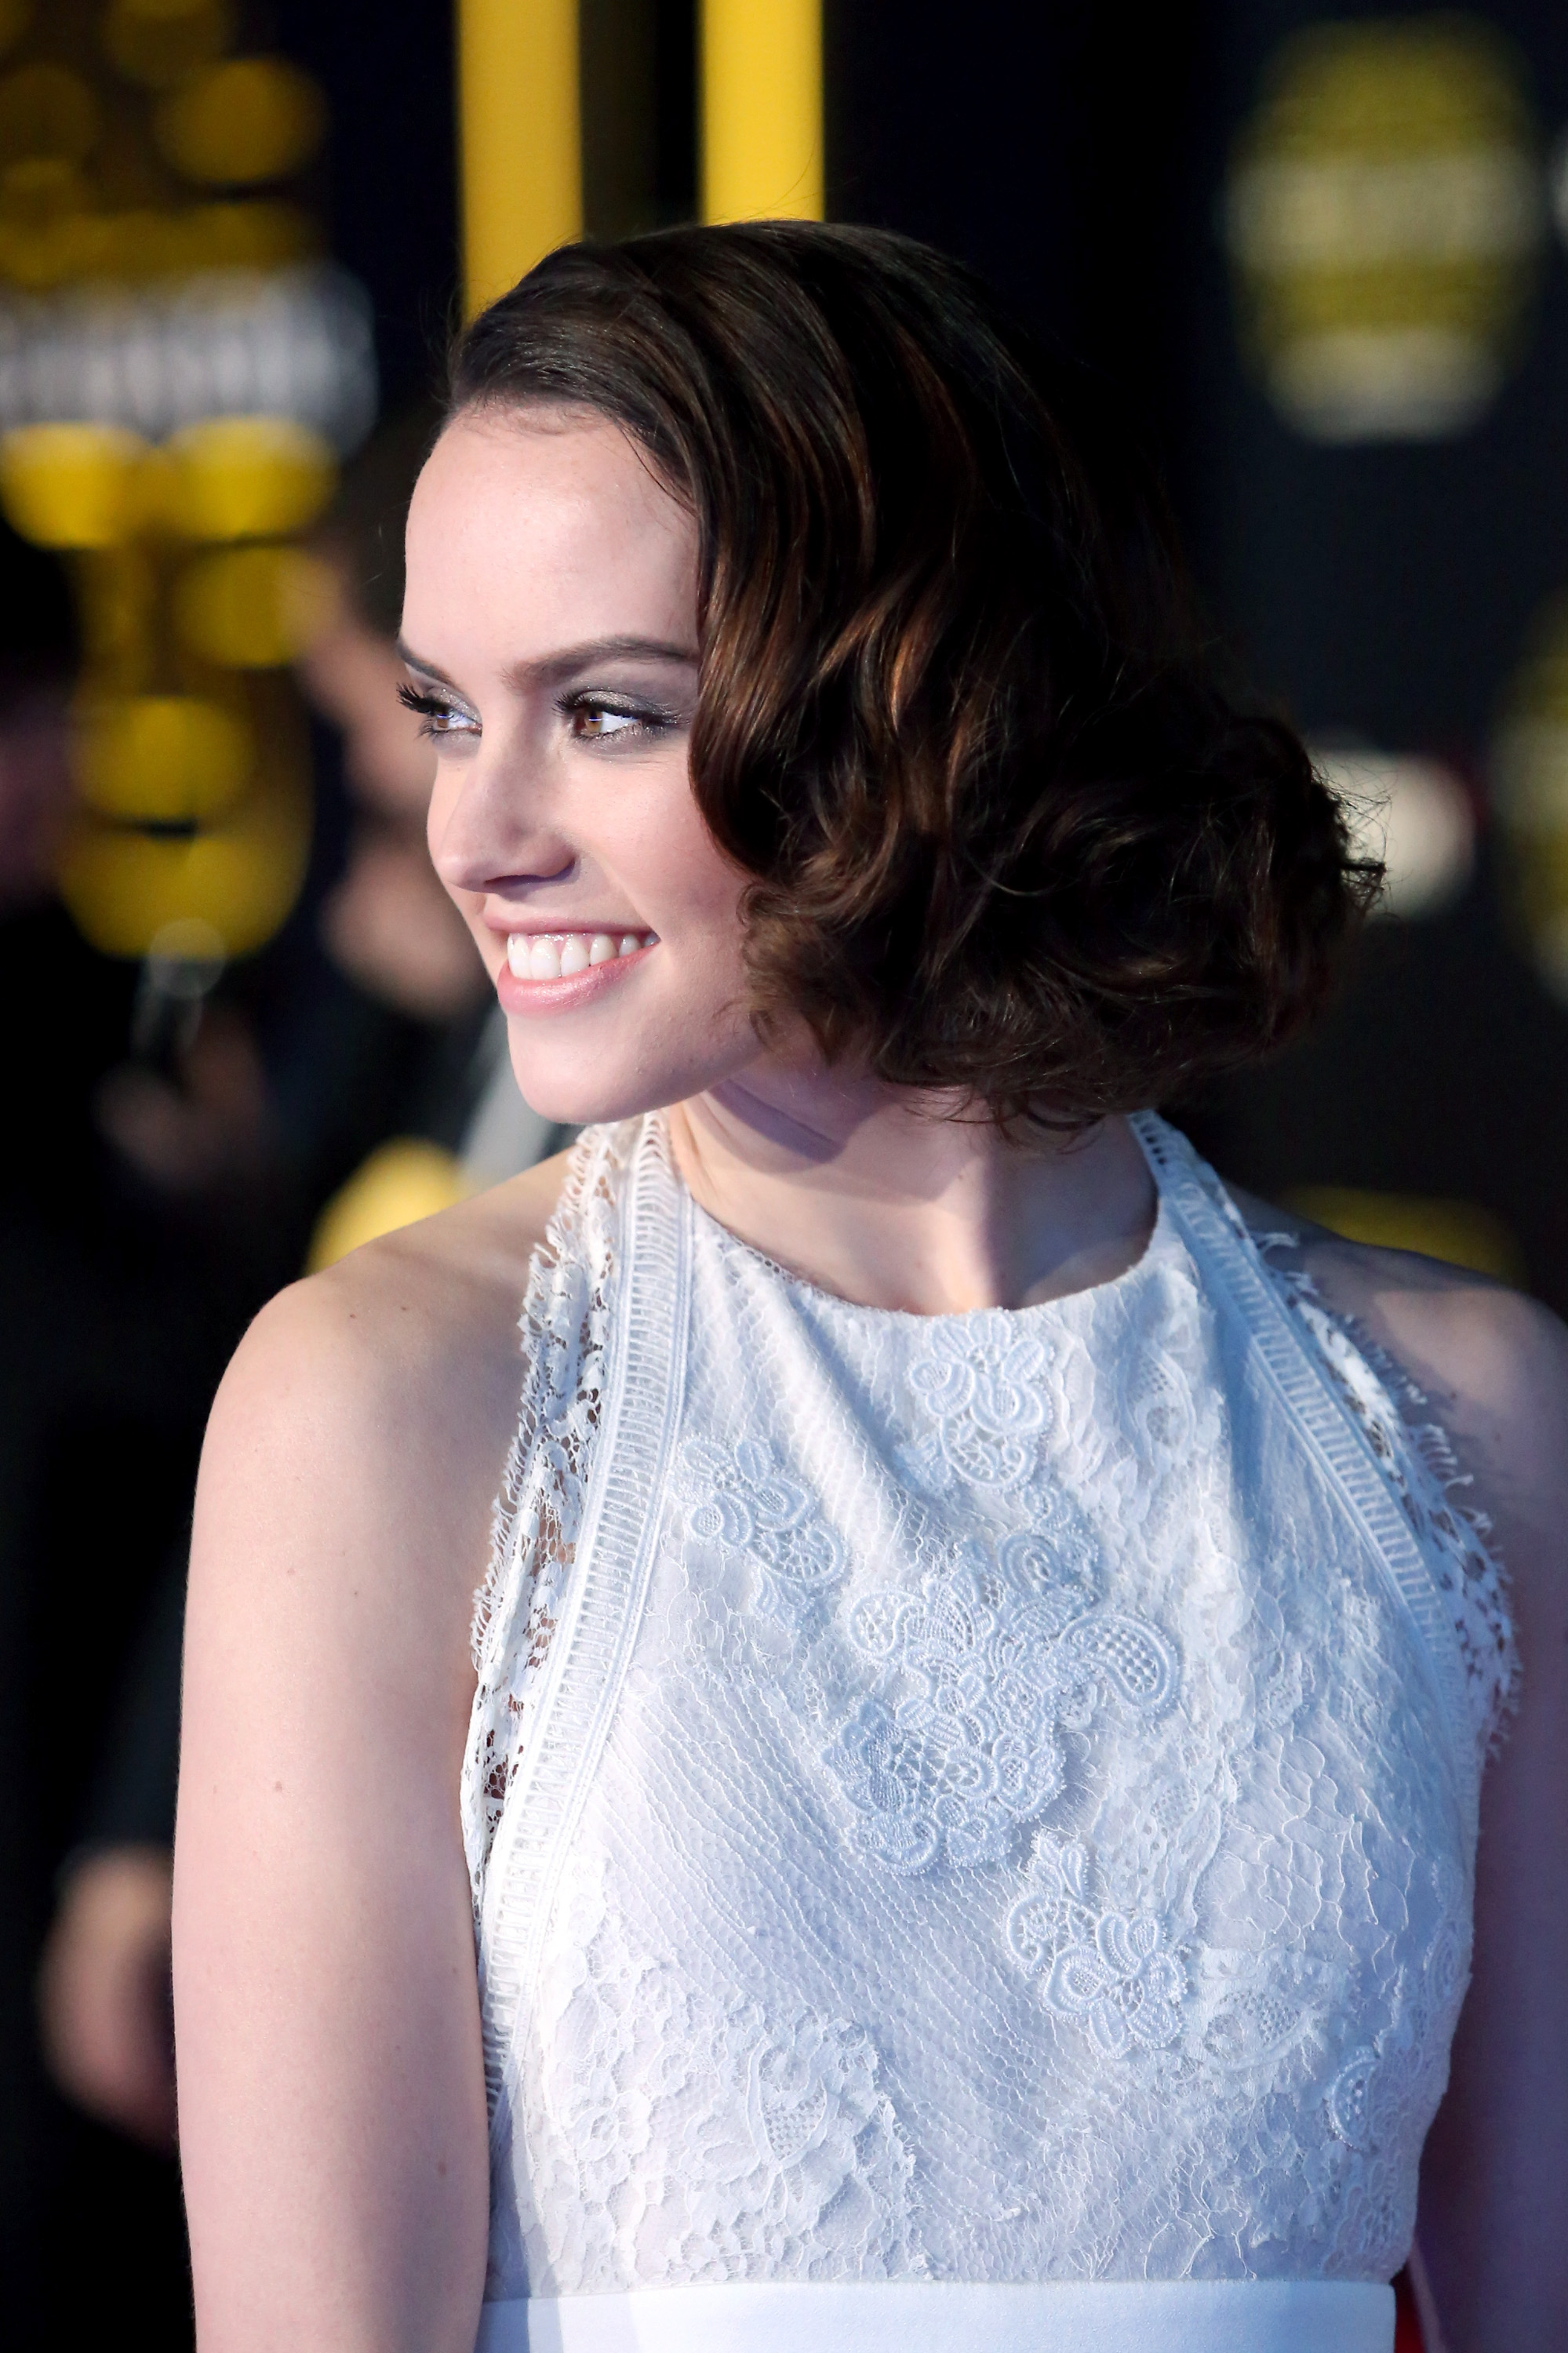 HOLLYWOOD, CA - DECEMBER 14:  Actress Daisy Ridley attends the World Premiere of ?Star Wars: The Force Awakens? at the Dolby, El Capitan, and TCL Theatres on December 14, 2015 in Hollywood, California.  (Photo by Jesse Grant/Getty Images for Disney) *** Local Caption *** Daisy Ridley